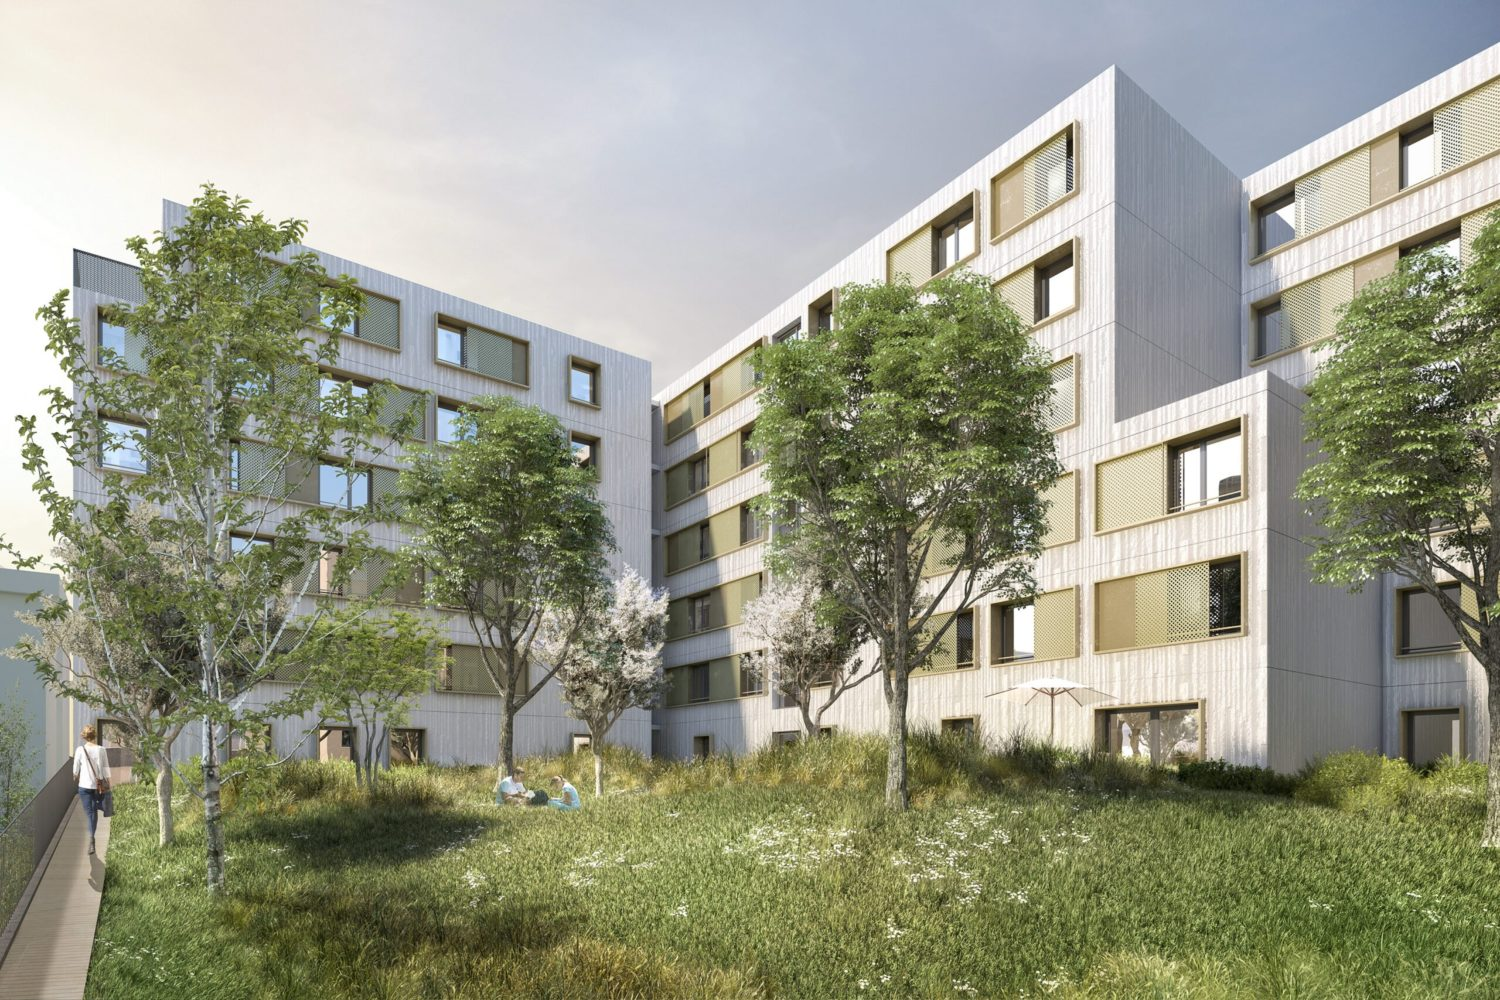 https://www.transform-architecture.com/wp-content/uploads/2020/12/BGN-Transform-Logements-Bagnolet-vue-jardin-04-scaled-e1610448217484.jpg